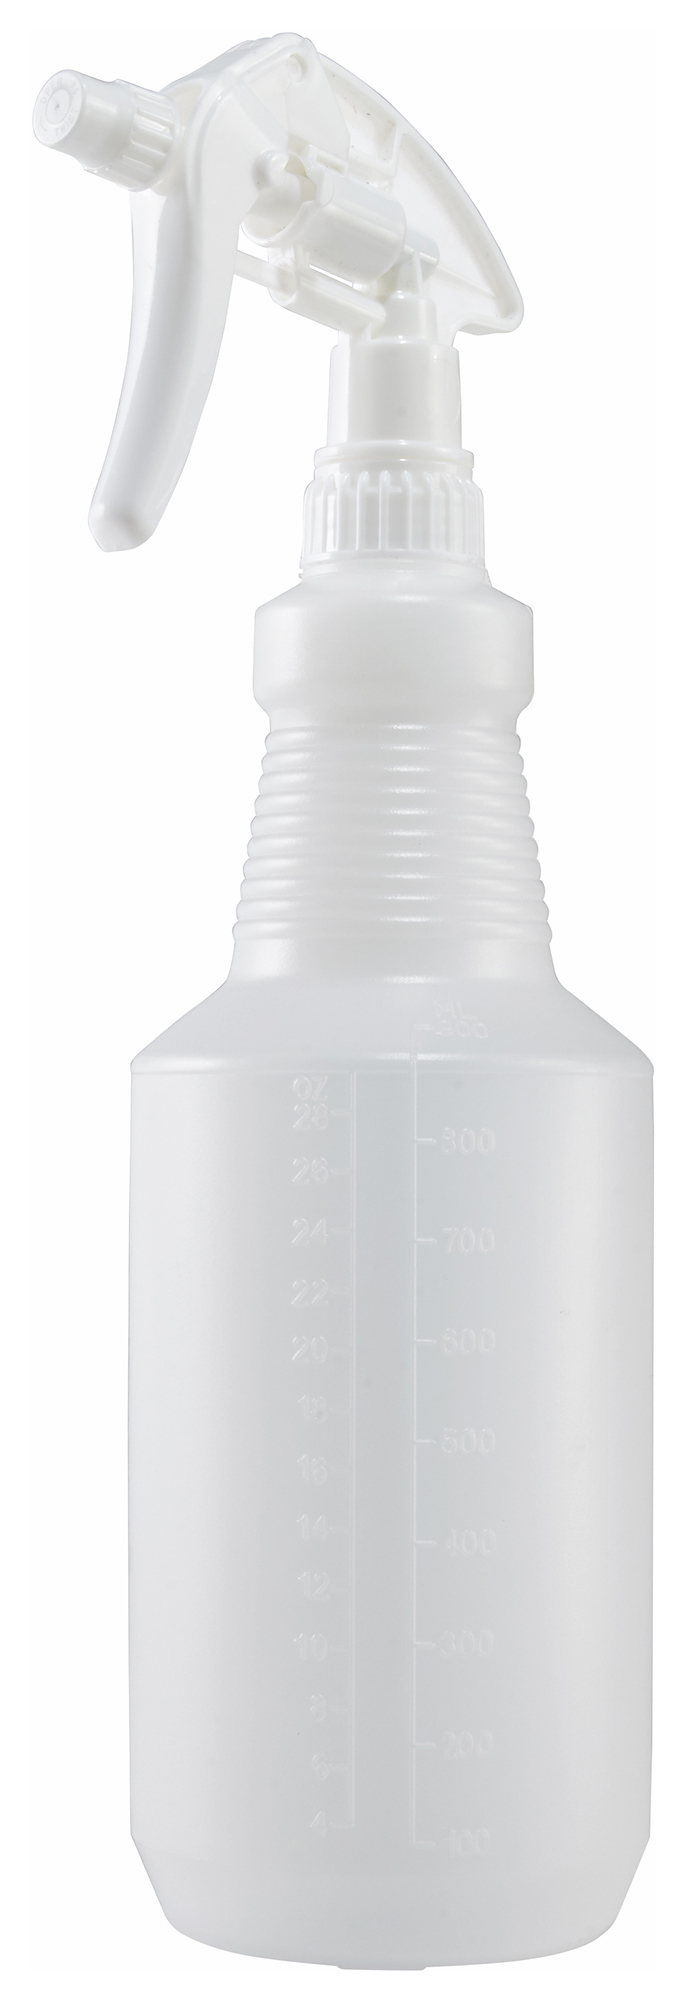 Winco PSR-9W cleaning accessories